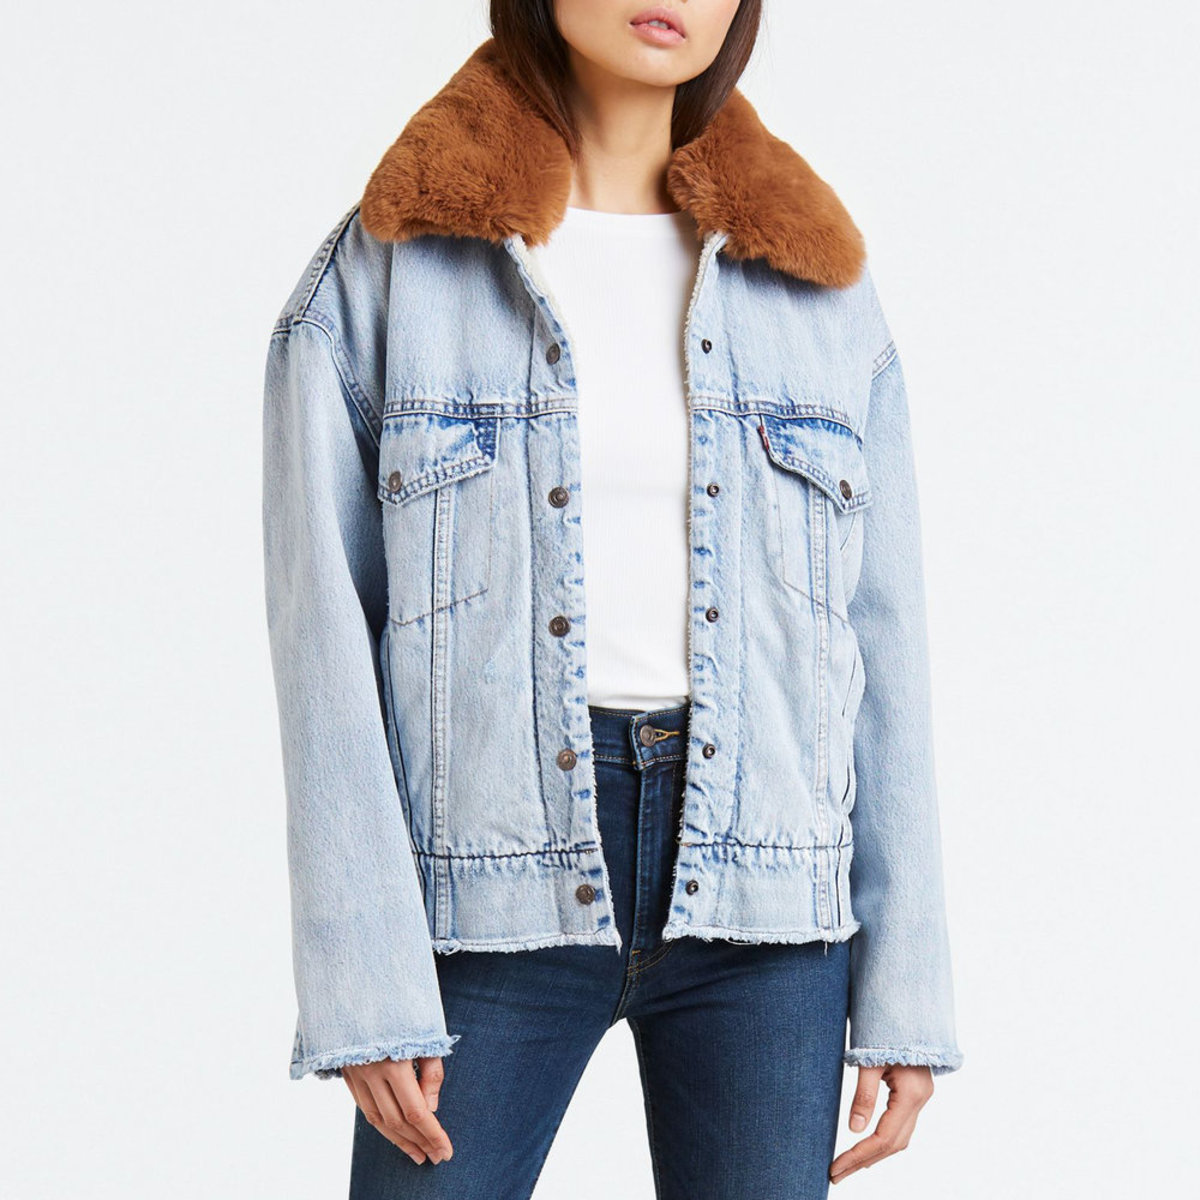 Levi's Sherpa Jacket w/ Removable Fur Collar $168